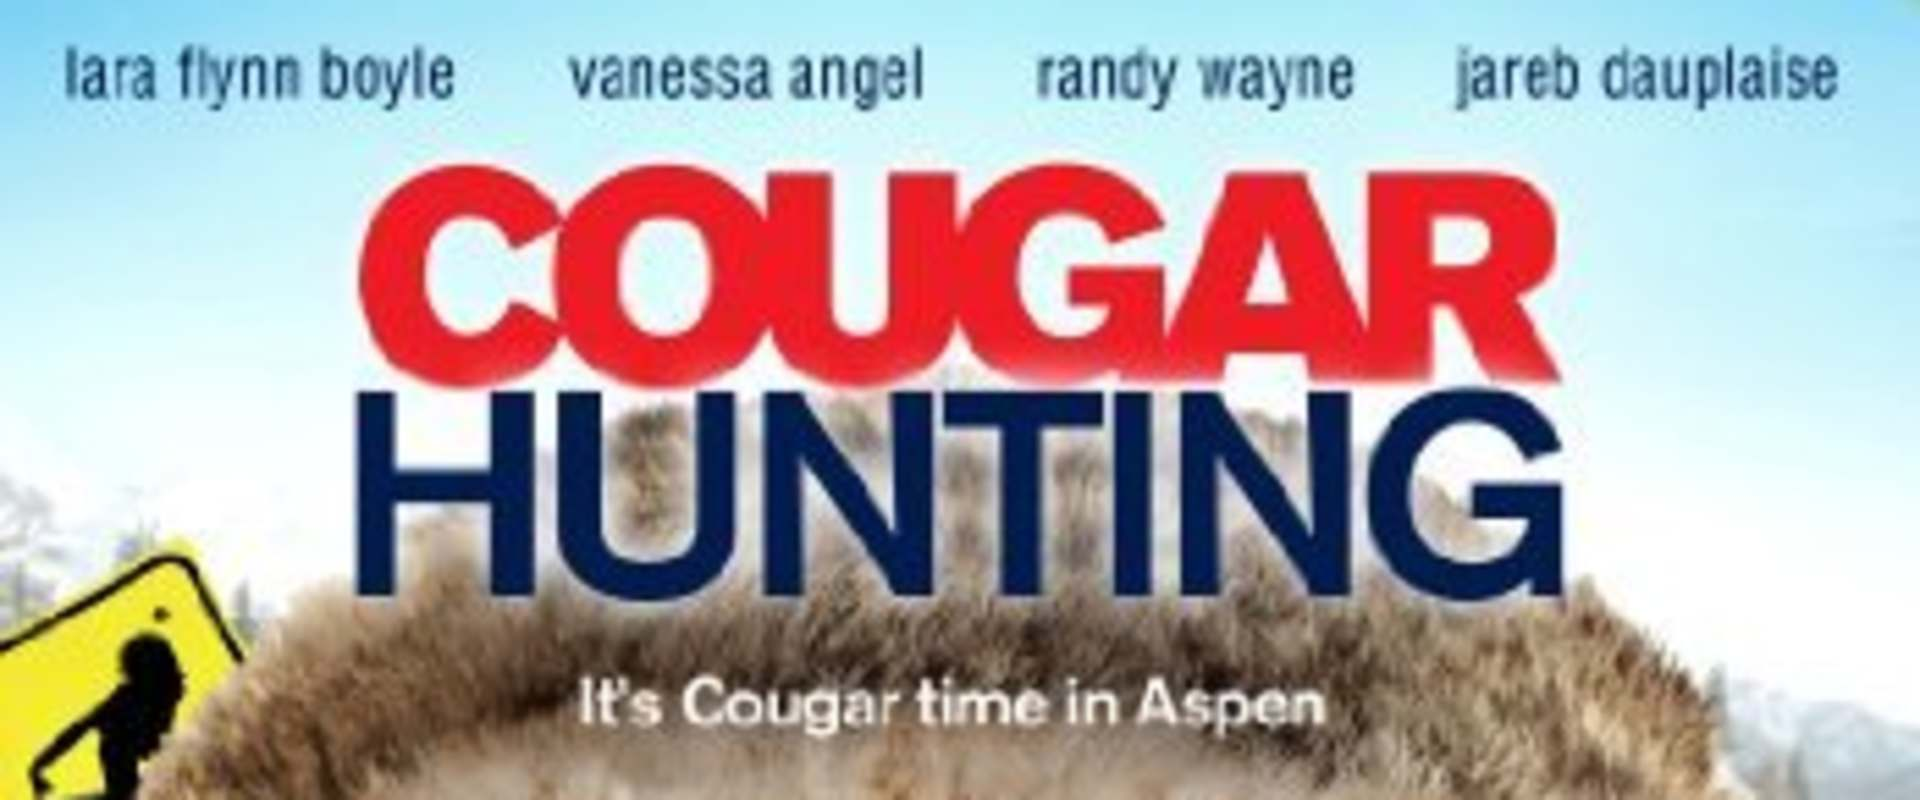 Cougar Hunting background 2